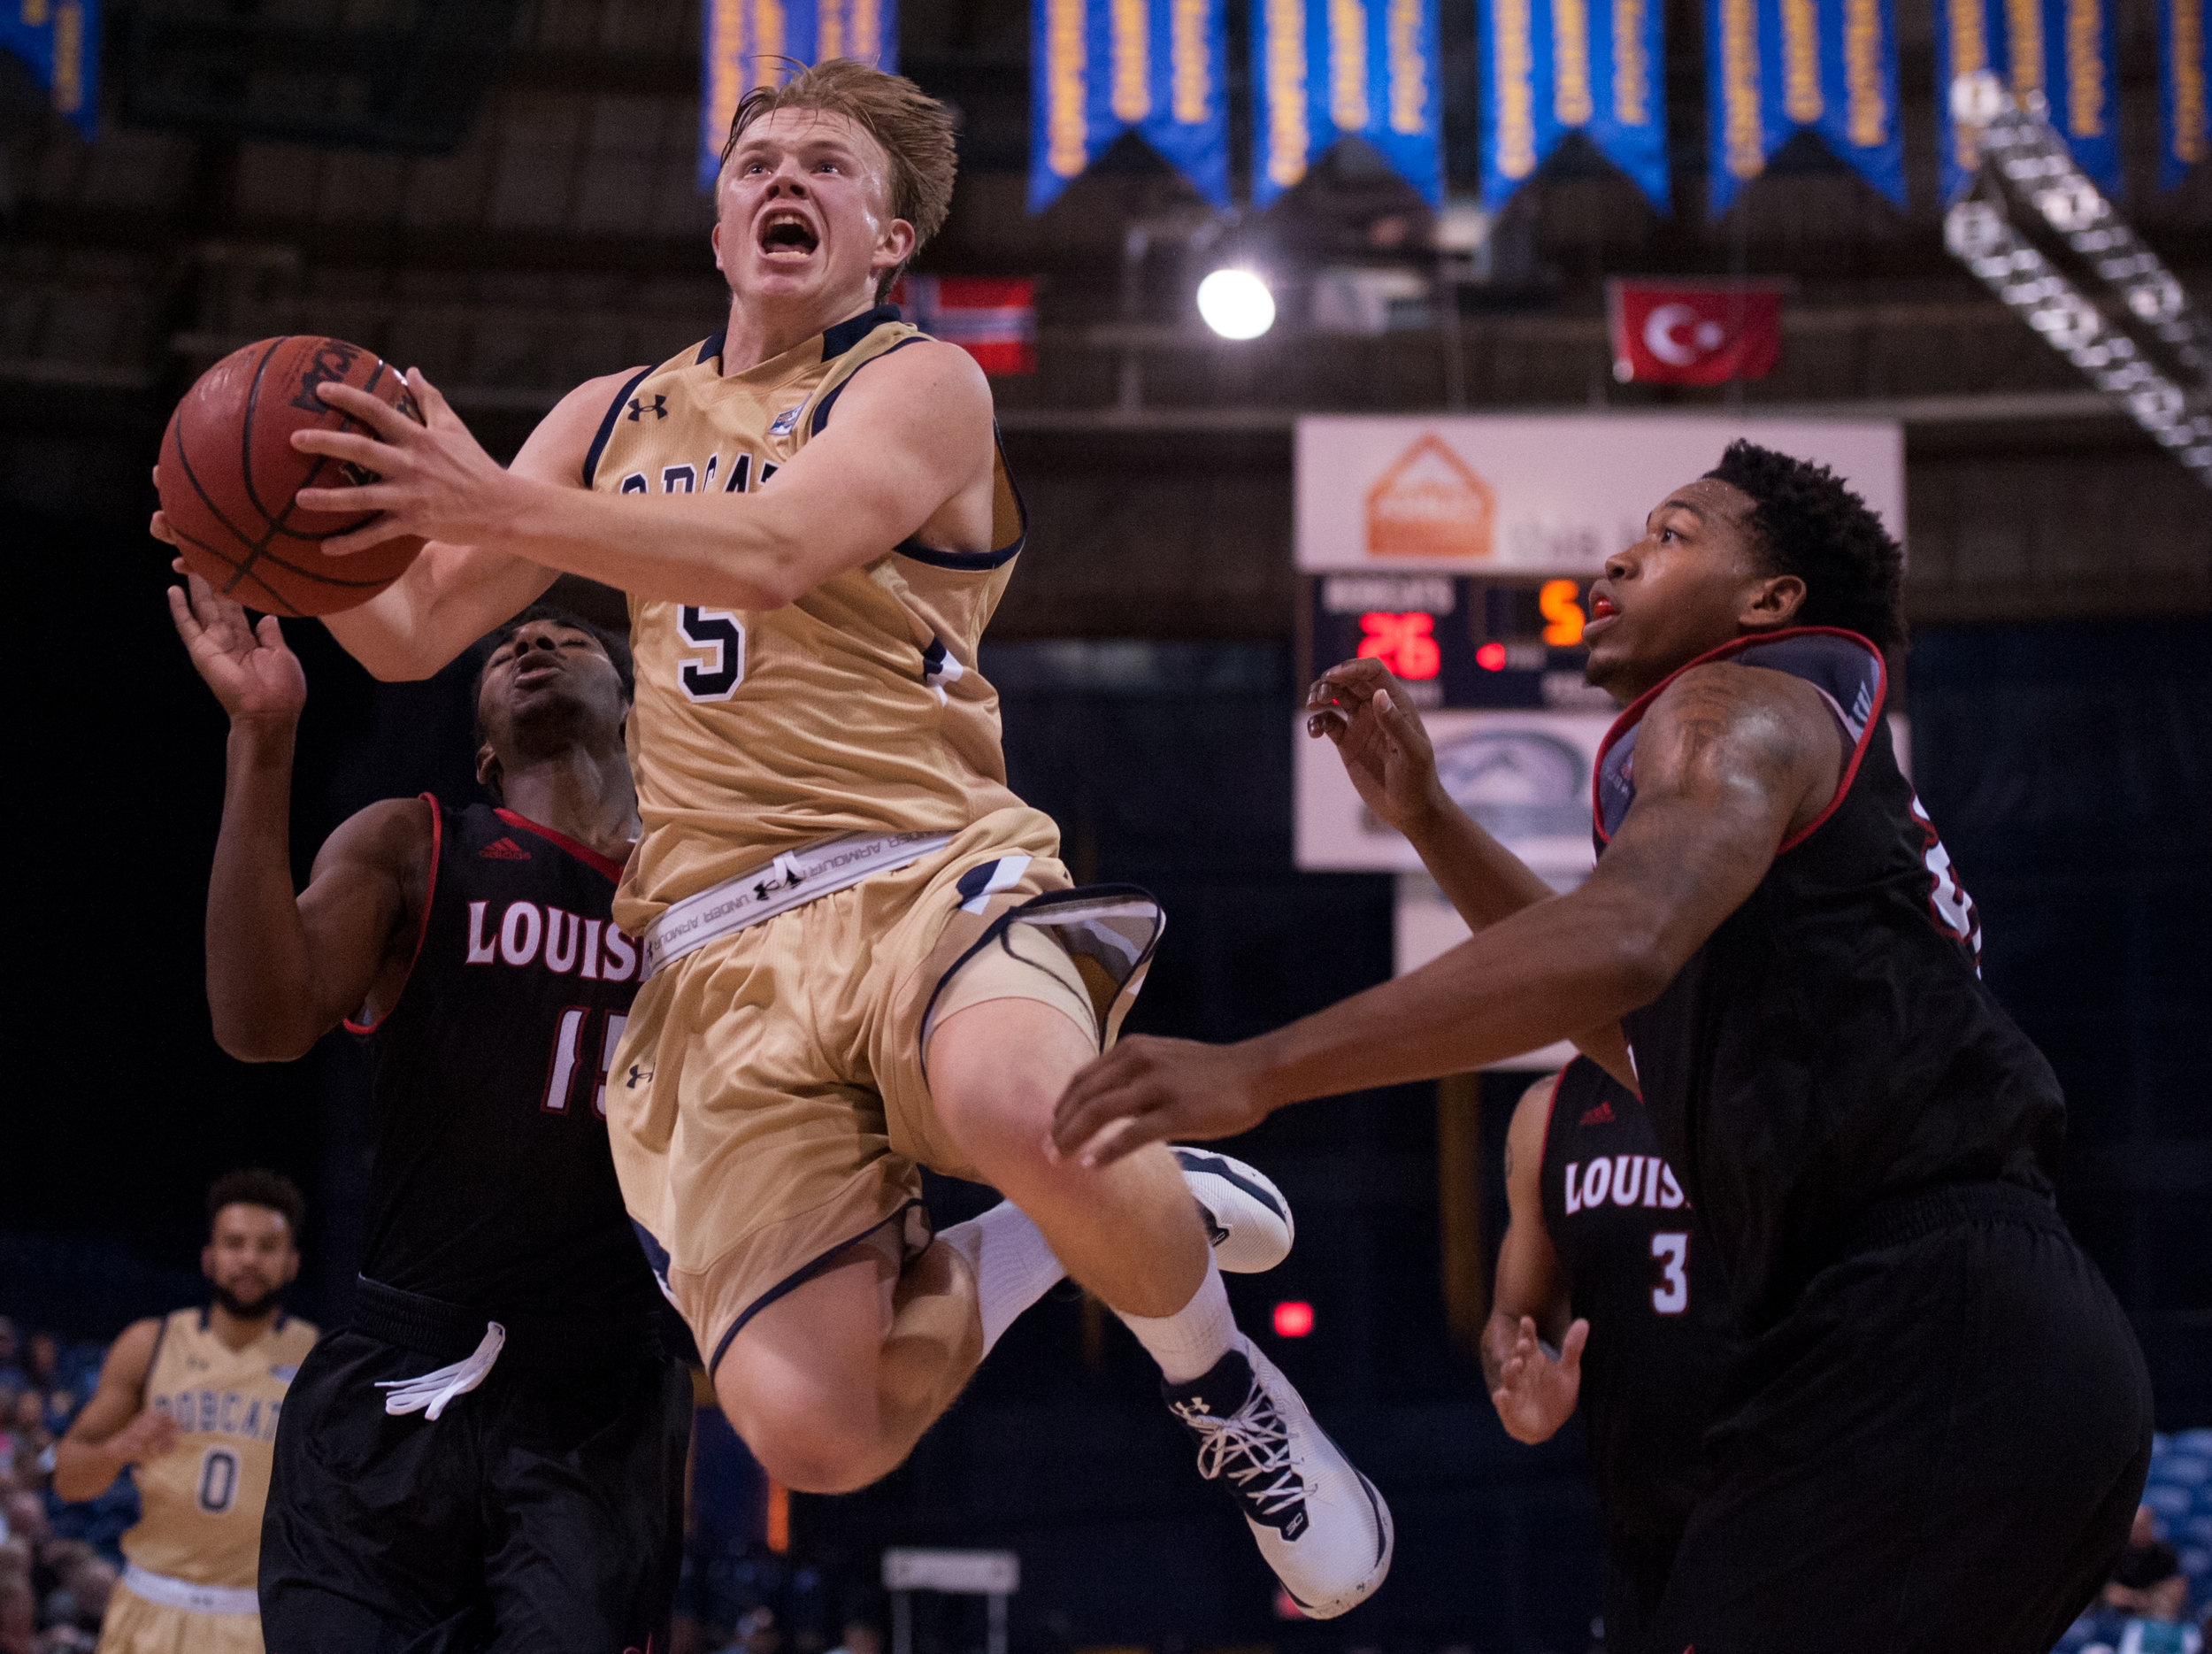 Montana State guard Harald Frey, center, flies past University of Louisiana Lafayette guard P.J. Hardy, left, and University of Louisiana Lafayette forward Bryce Washington, right, during the first half of an NCAA basketball game in Bozeman, Mont.  Sunday, Nov. 13, 2016